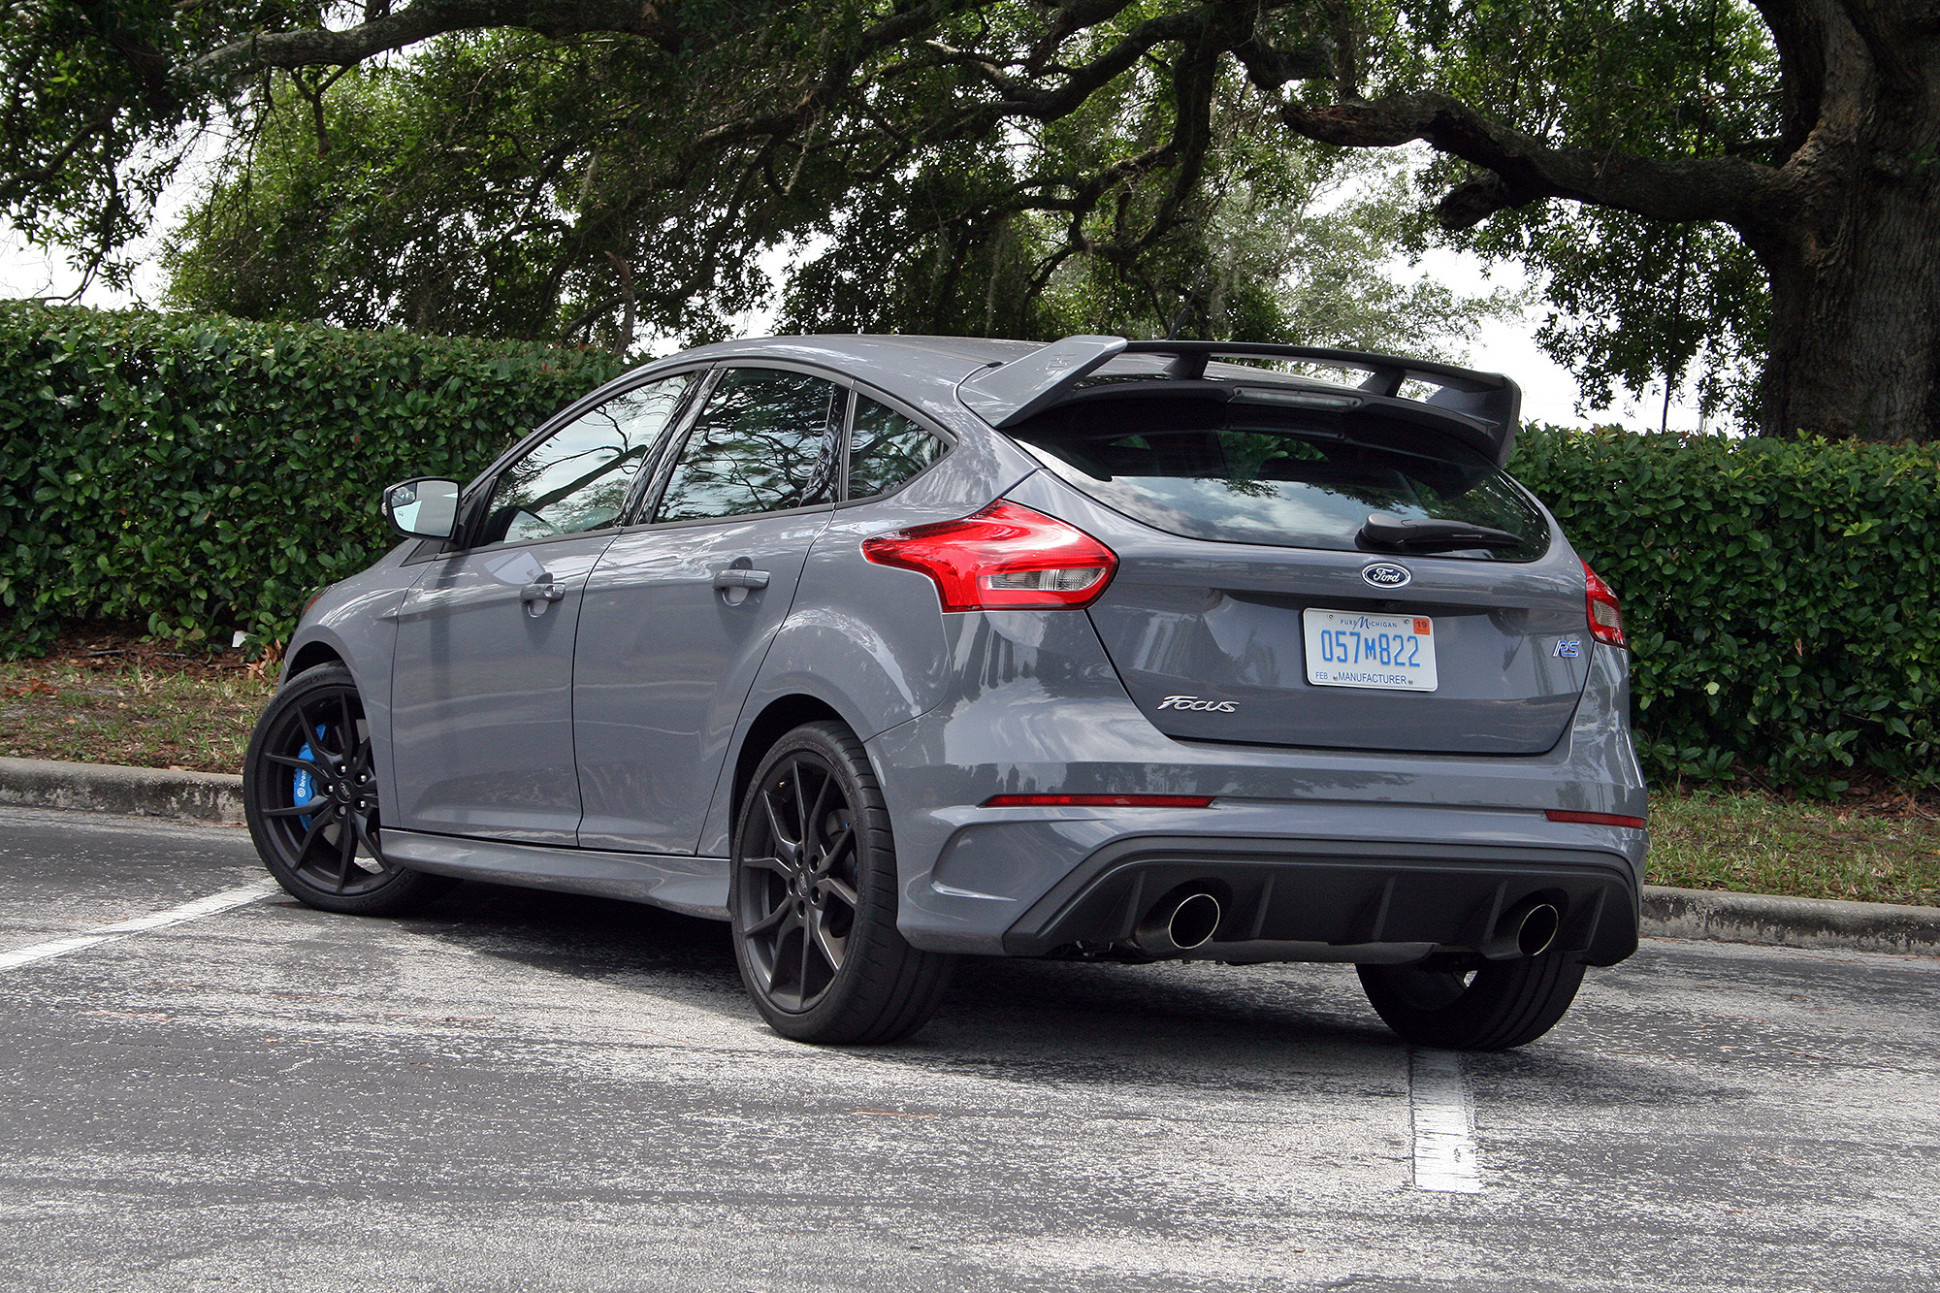 Redesign and Concept 2022 Ford Focus Rs St